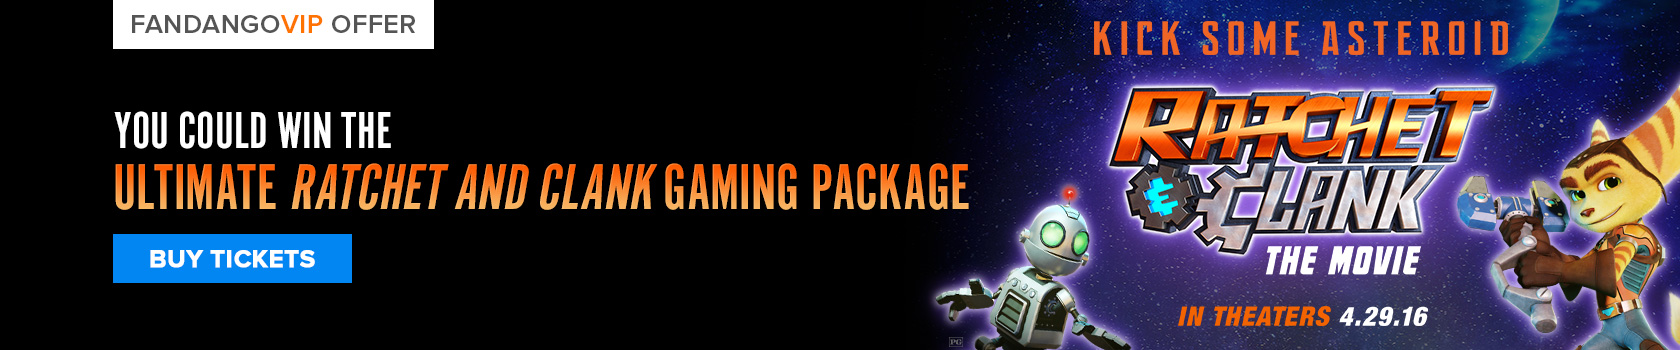 Fandango Ratchet and Clank Sweepstakes